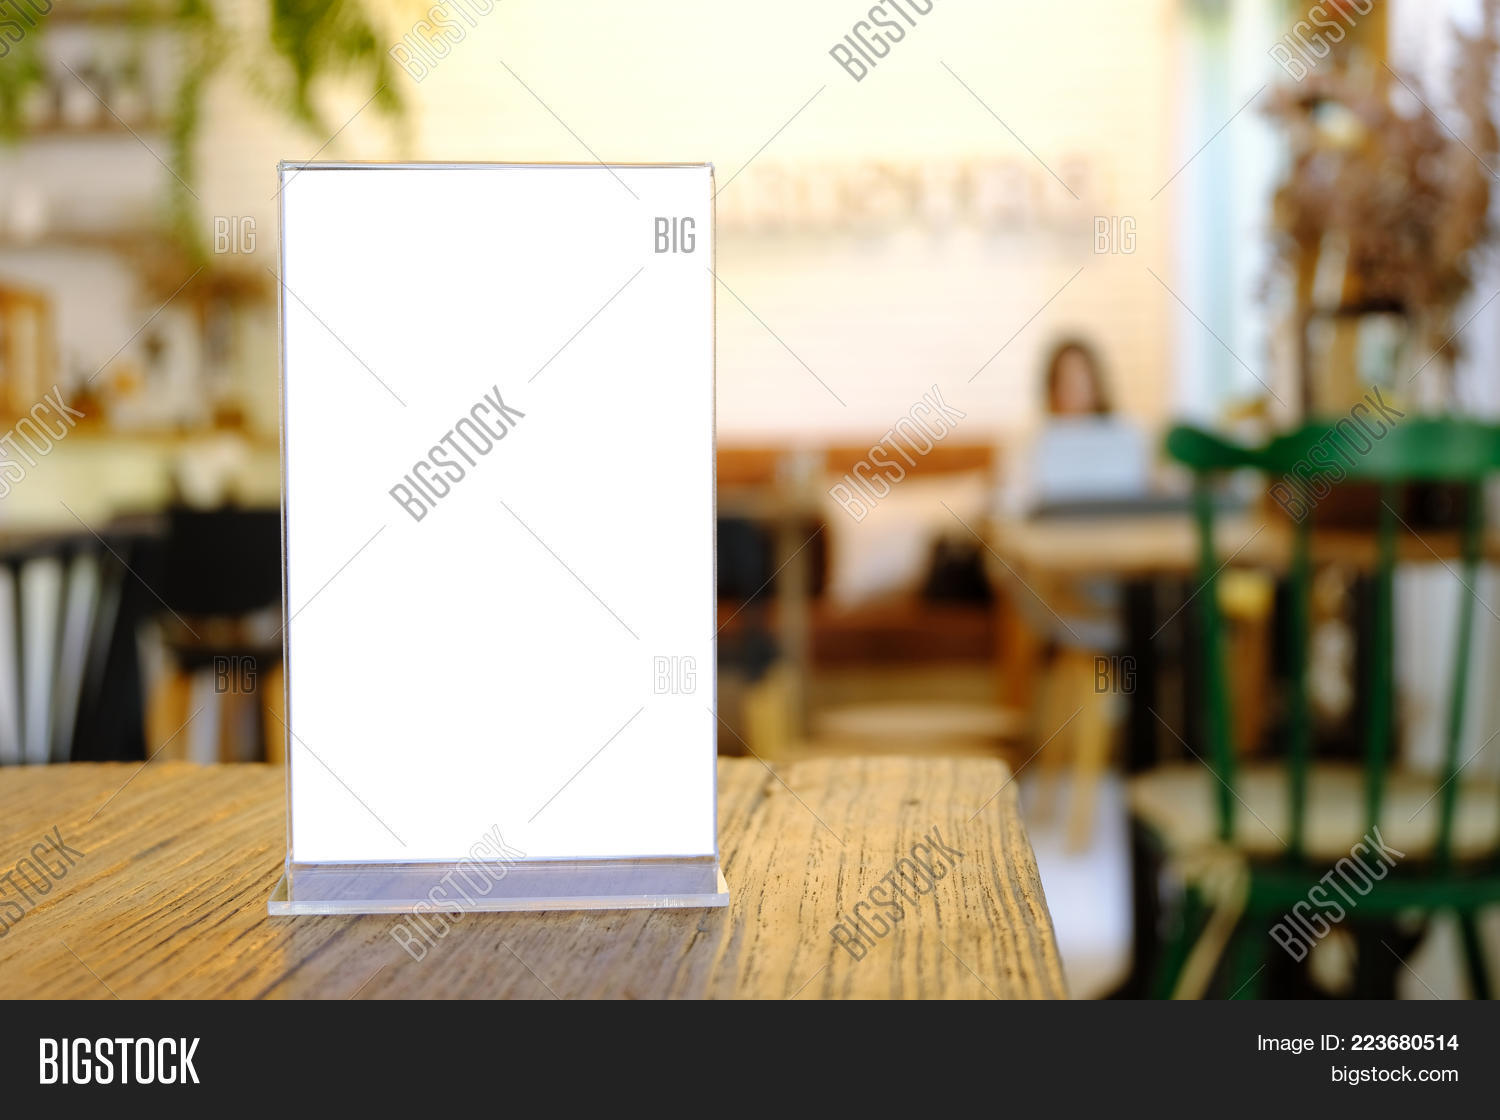 Mock Menu Frame Image Photo Free Trial Bigstock - Standing table for restaurant